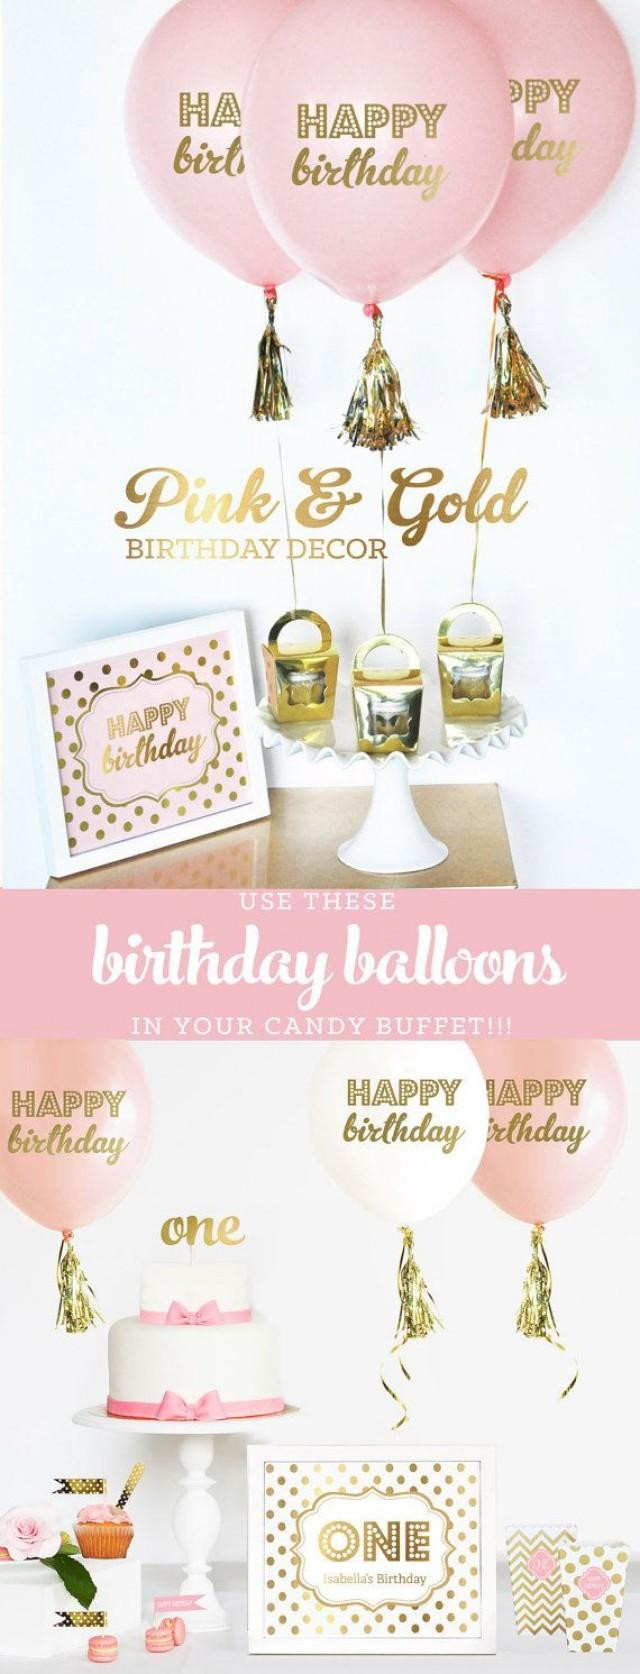 Best ideas about Pink And Gold First Birthday Decorations . Save or Pin Pink And Gold Birthday Decorations Pink And Gold First Now.